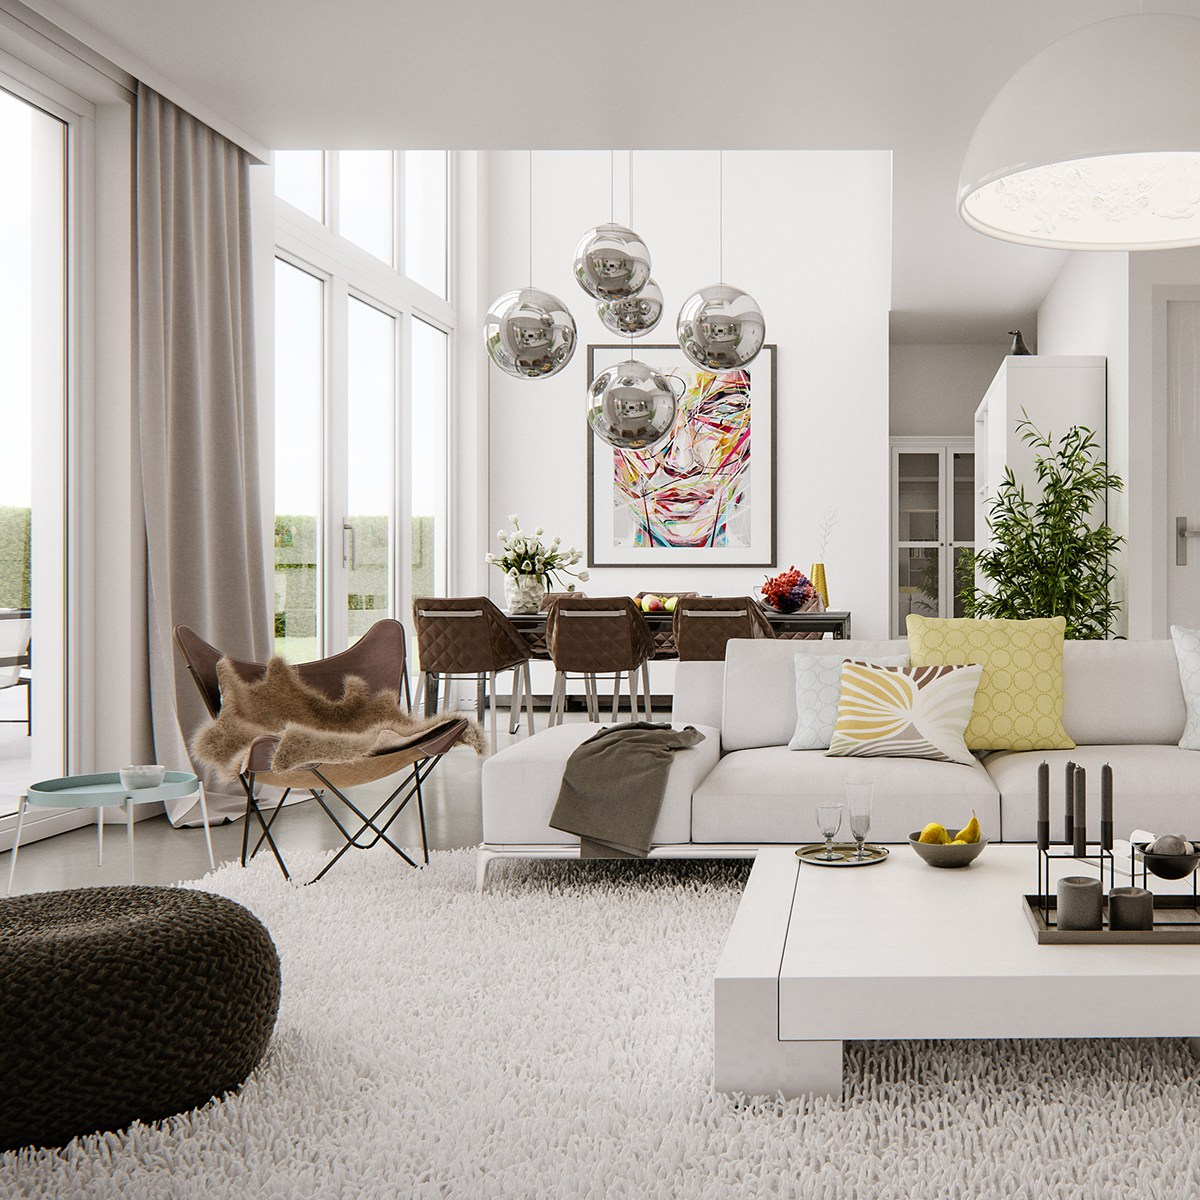 5 living rooms that demonstrate stylish modern design trends for Decoration maison et jardin